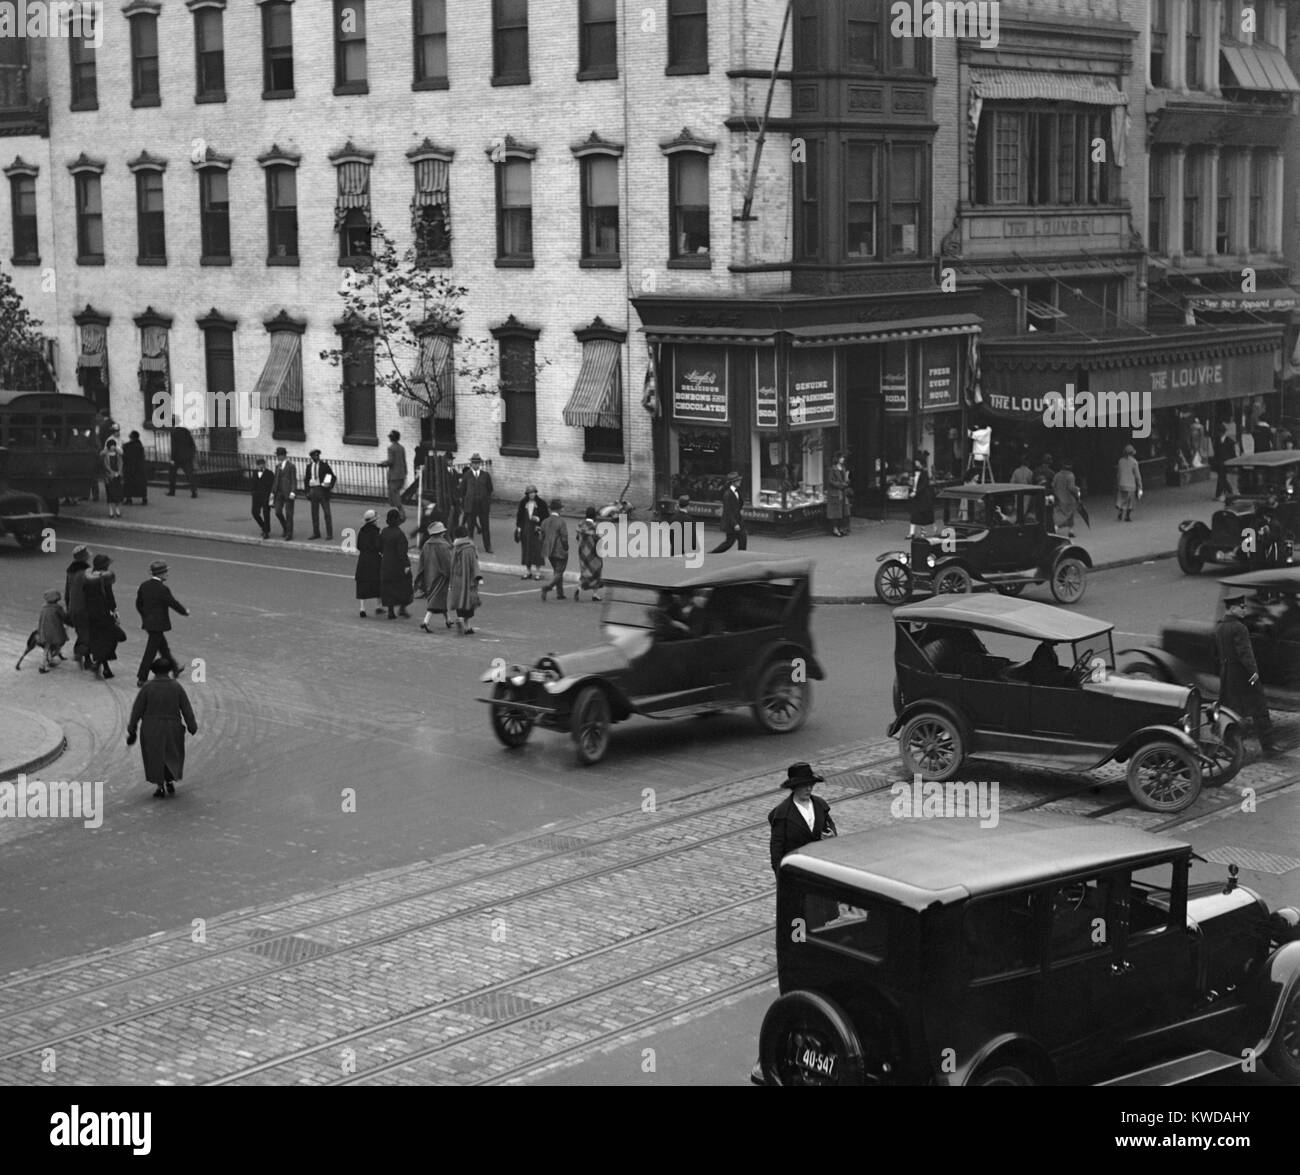 Traffic Signals Black And White Stock Photos Images Alamy Signal Intersection Diagram Also Blank Washington Dc With Automobile Pedestrians In 1924 Were First